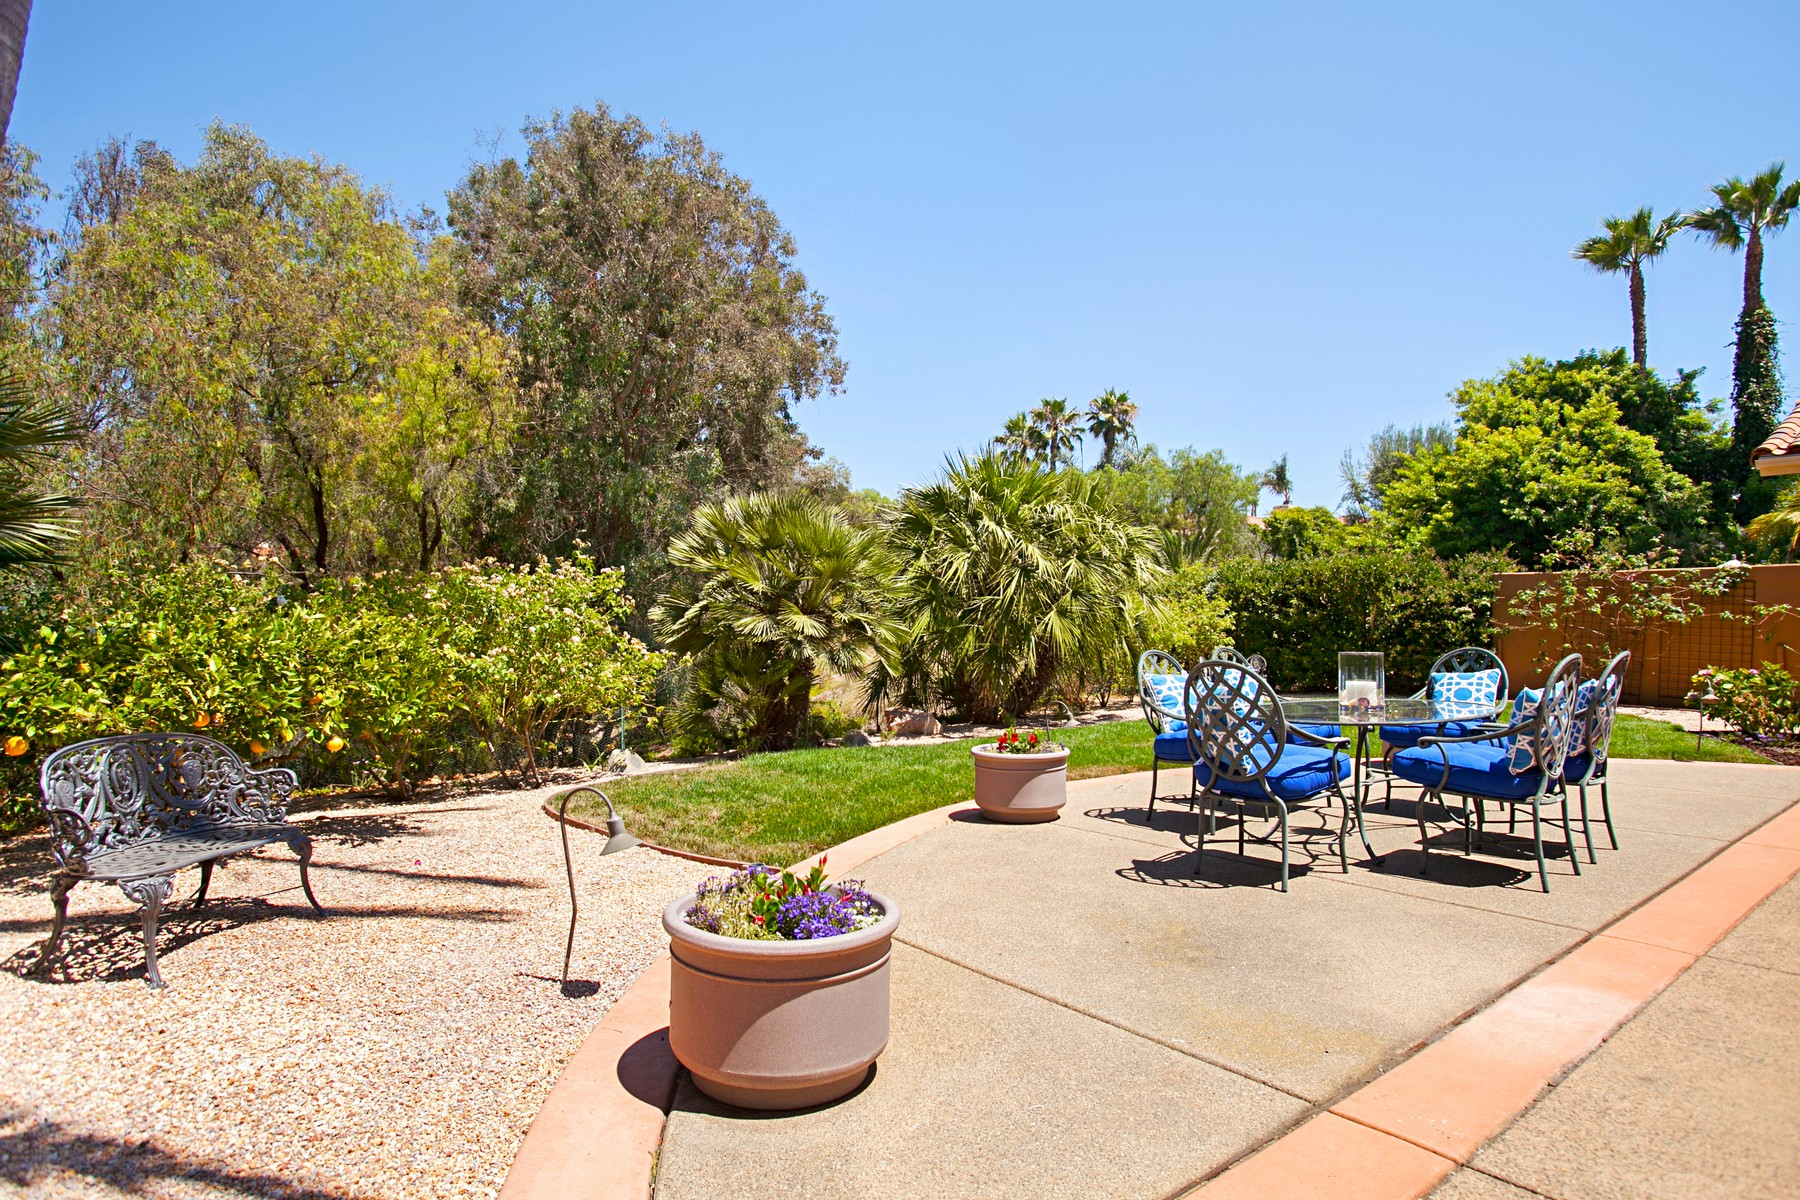 Additional photo for property listing at 15483 Pimlico Corte  Rancho Santa Fe, 加利福尼亚州 92067 美国